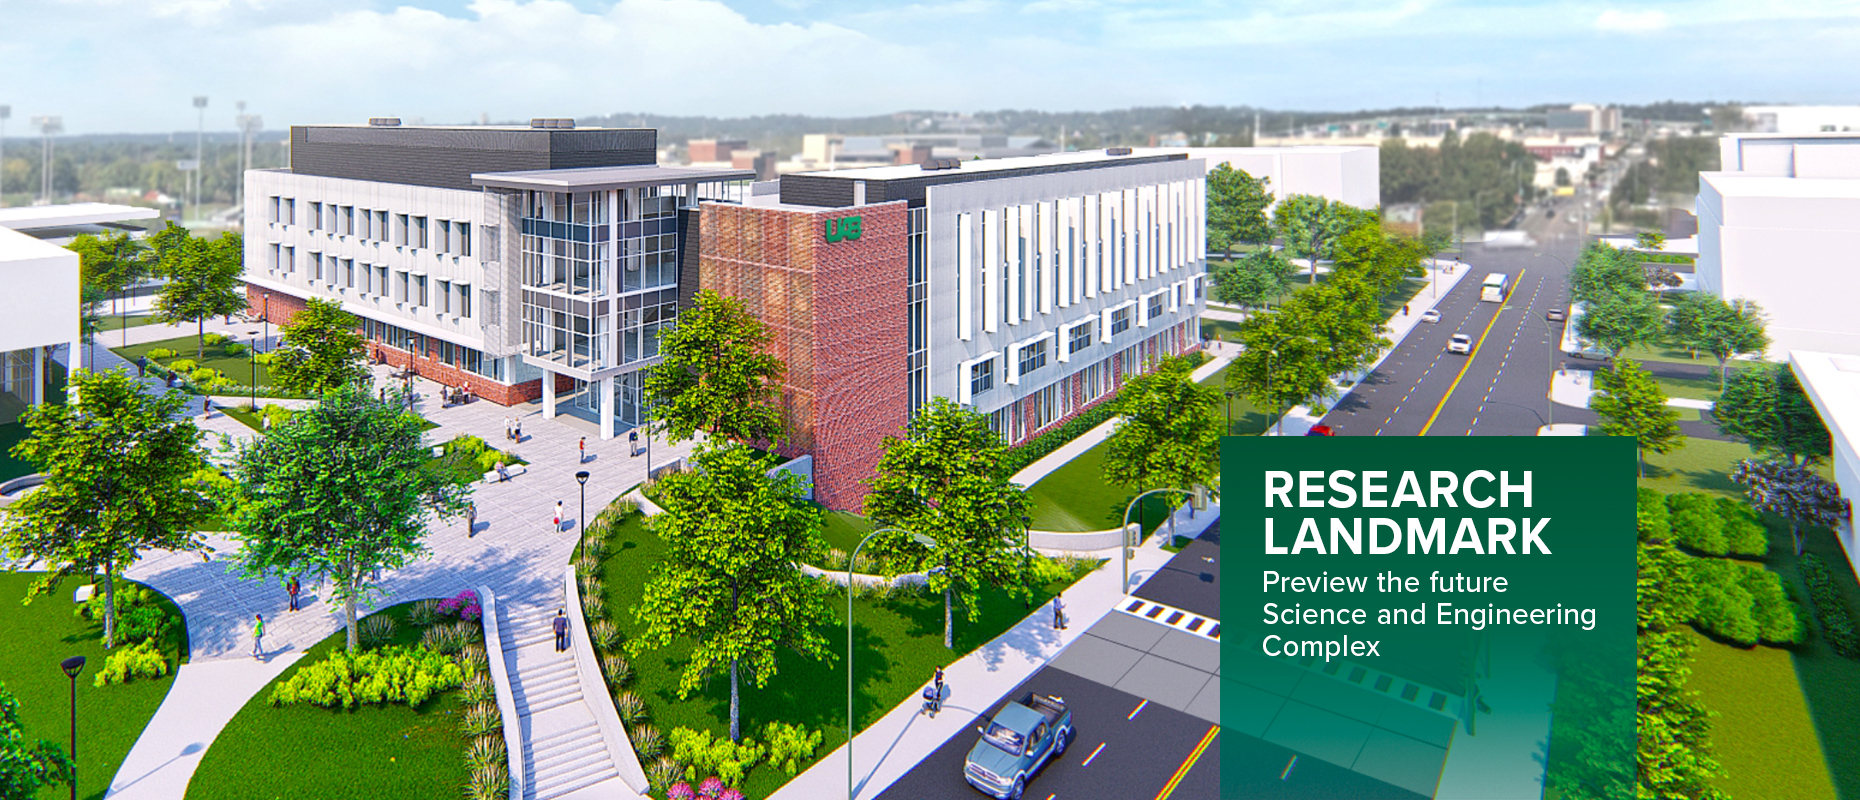 Research Landmark: Preview the future Science and Engineering Complex